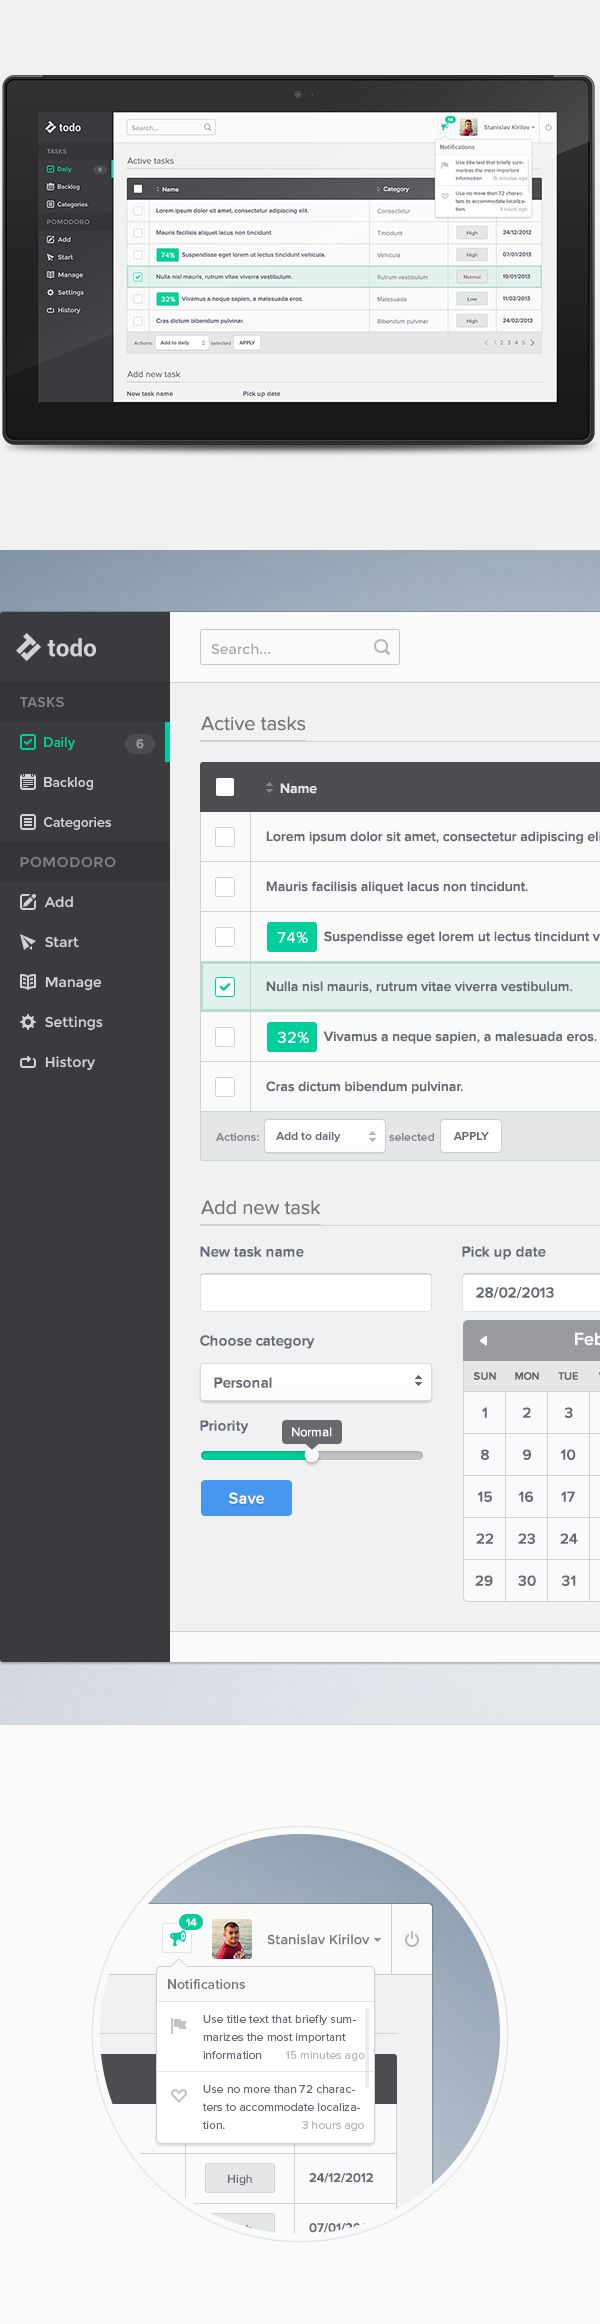 Productivity Platform by Stanislav Kirilov, via Behance